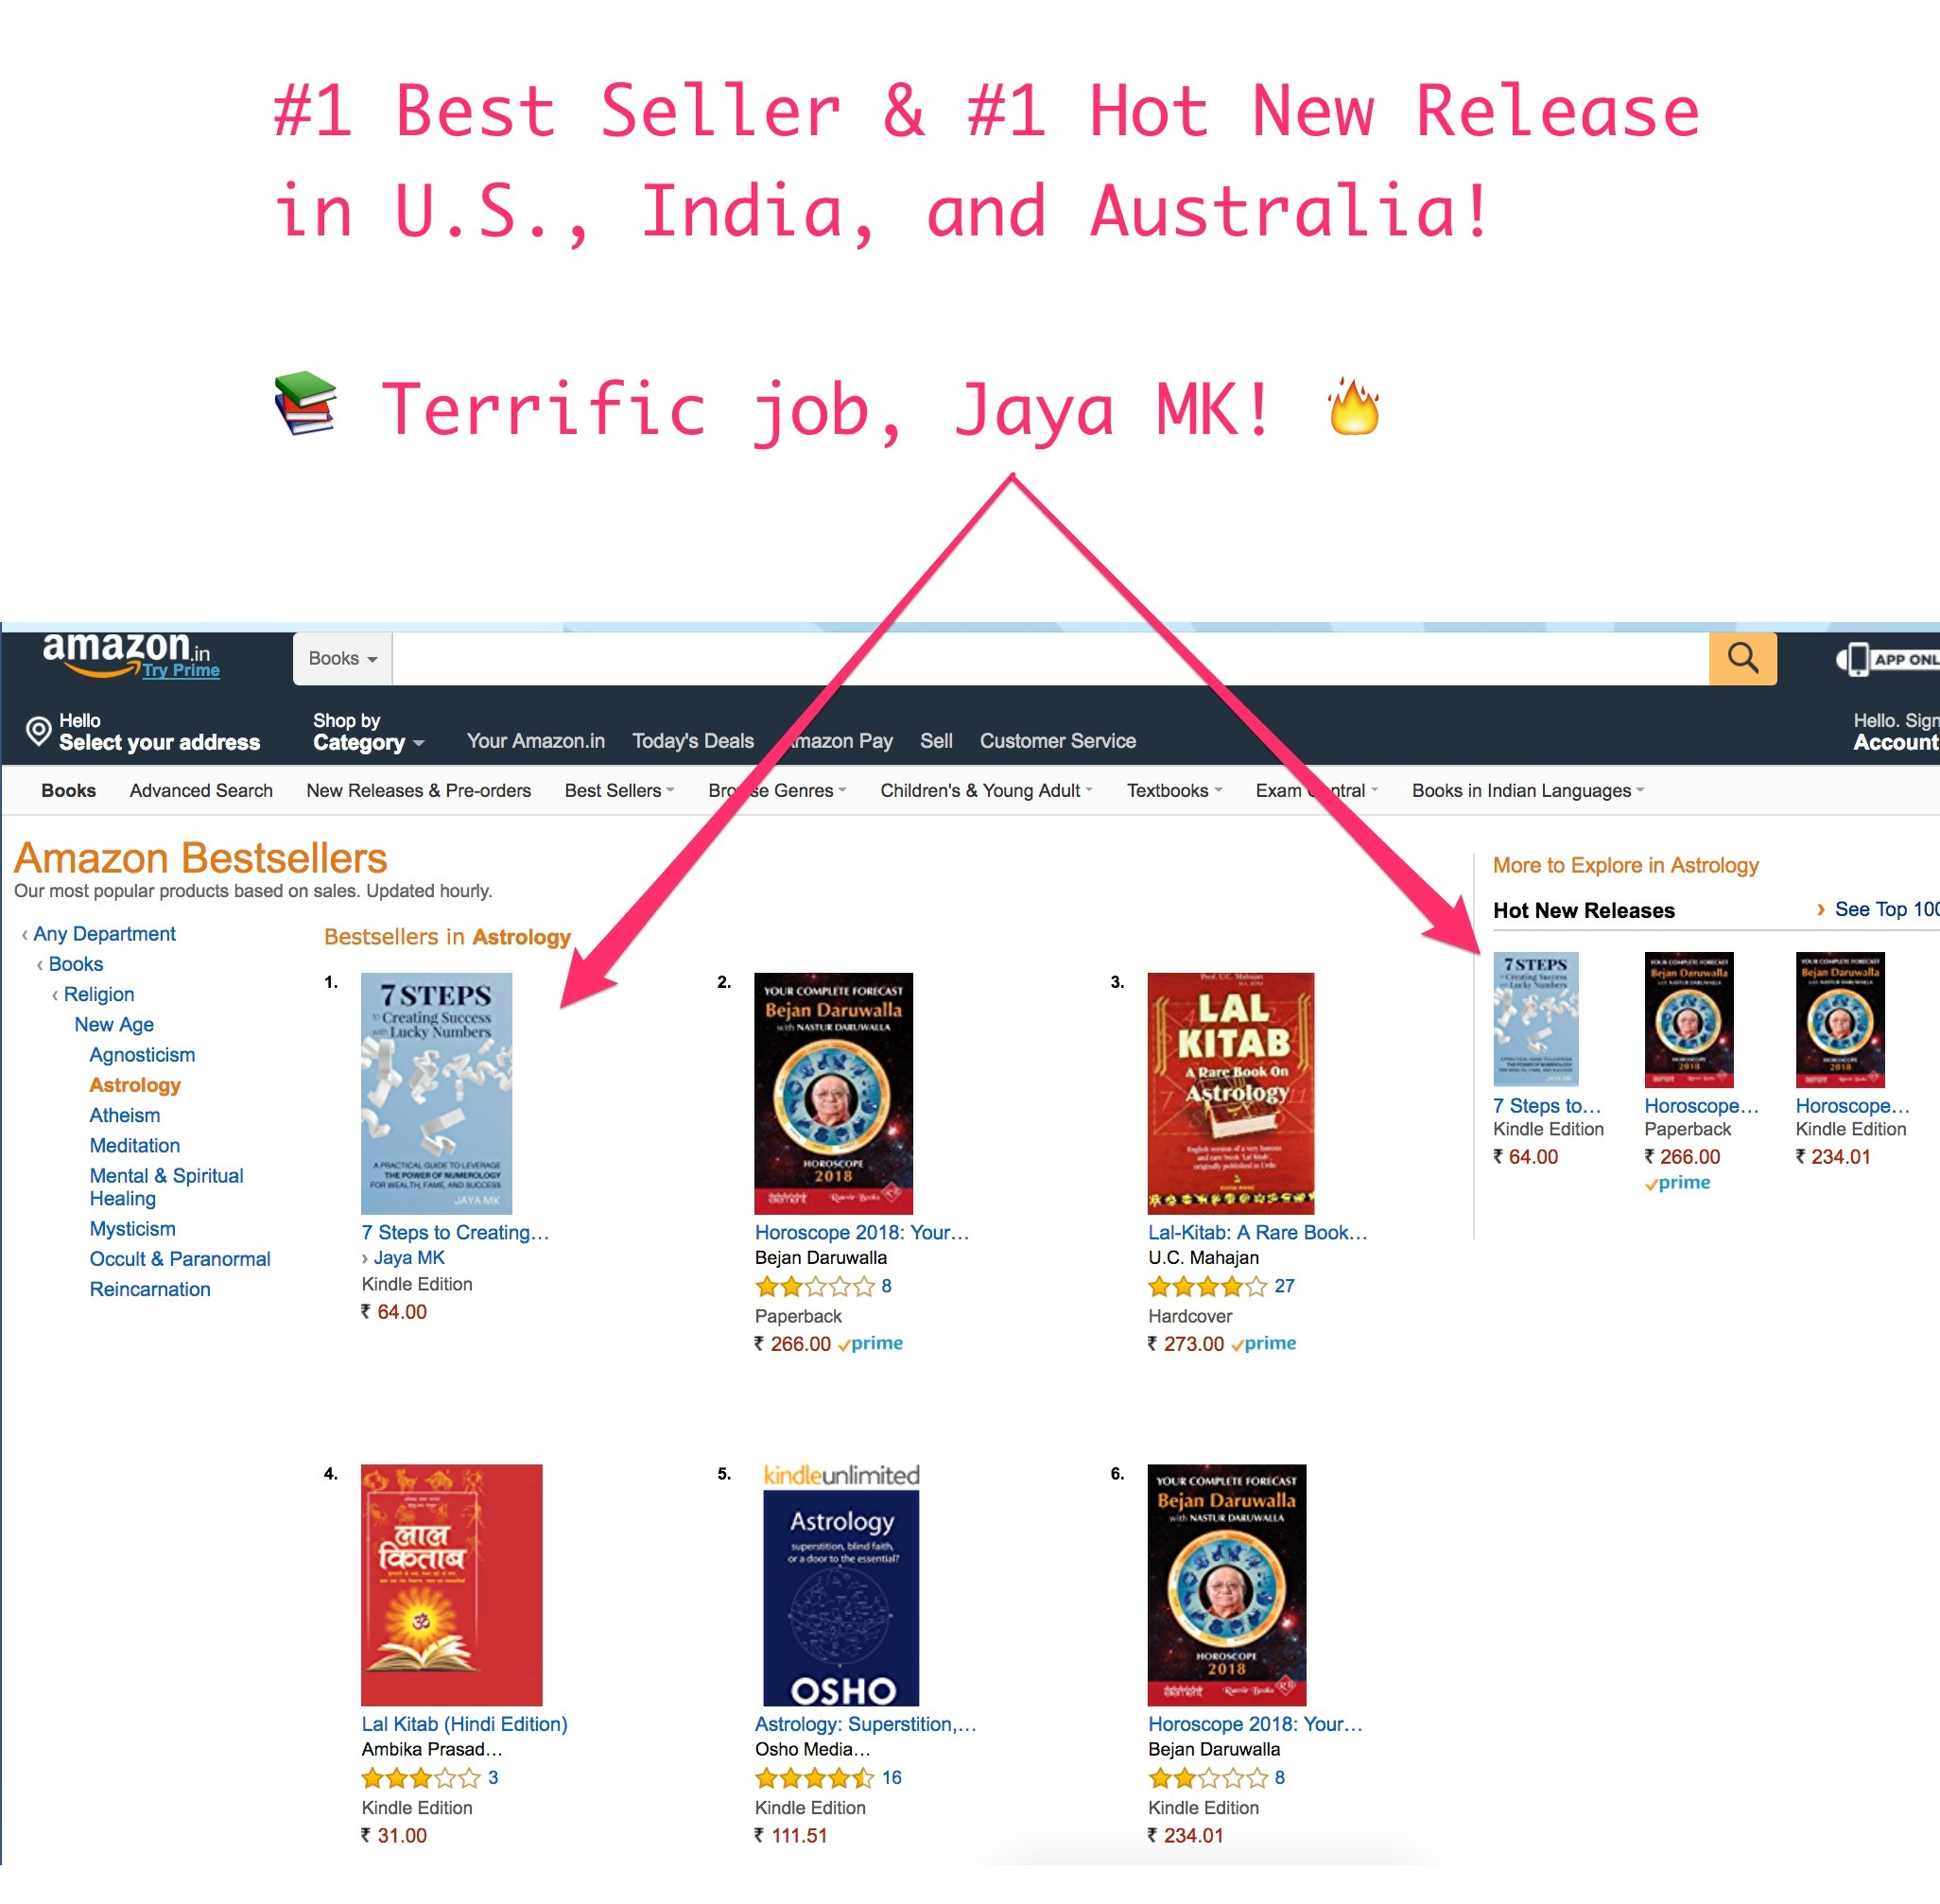 jaya mk #1 best seller and hot new release - Copy That Pops